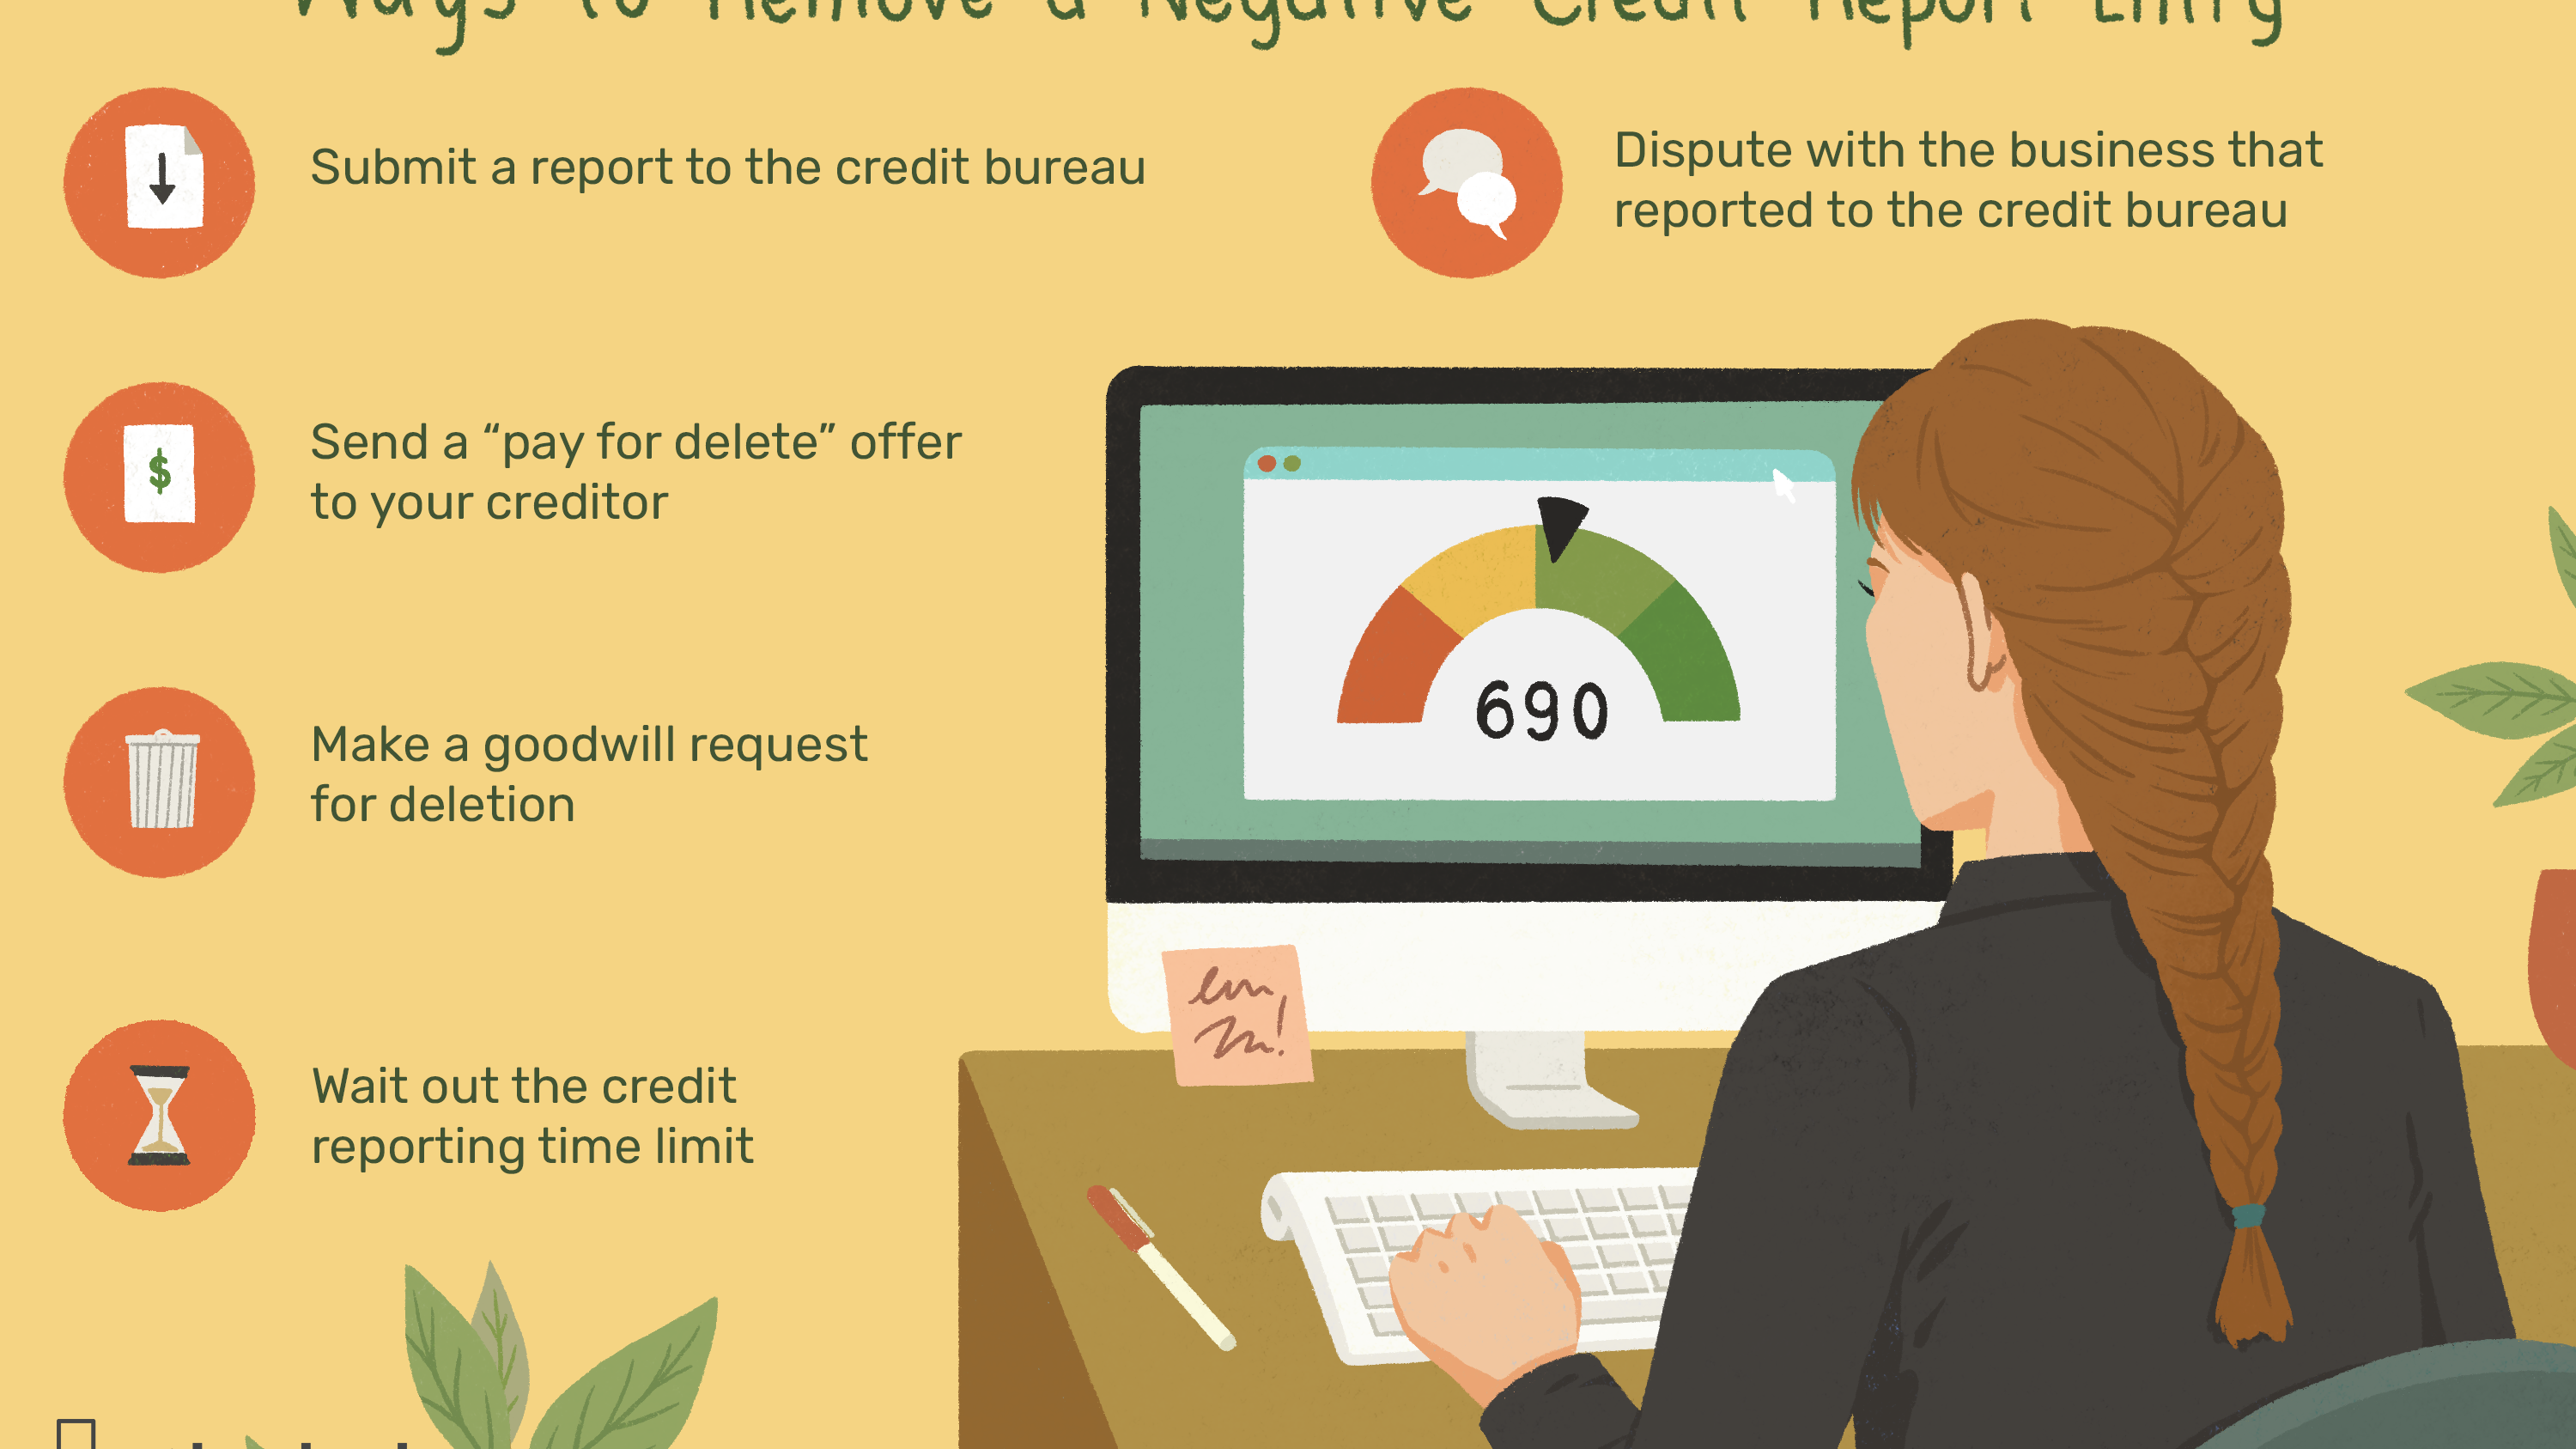 Strategies To Remove Negative Credit Report Entries